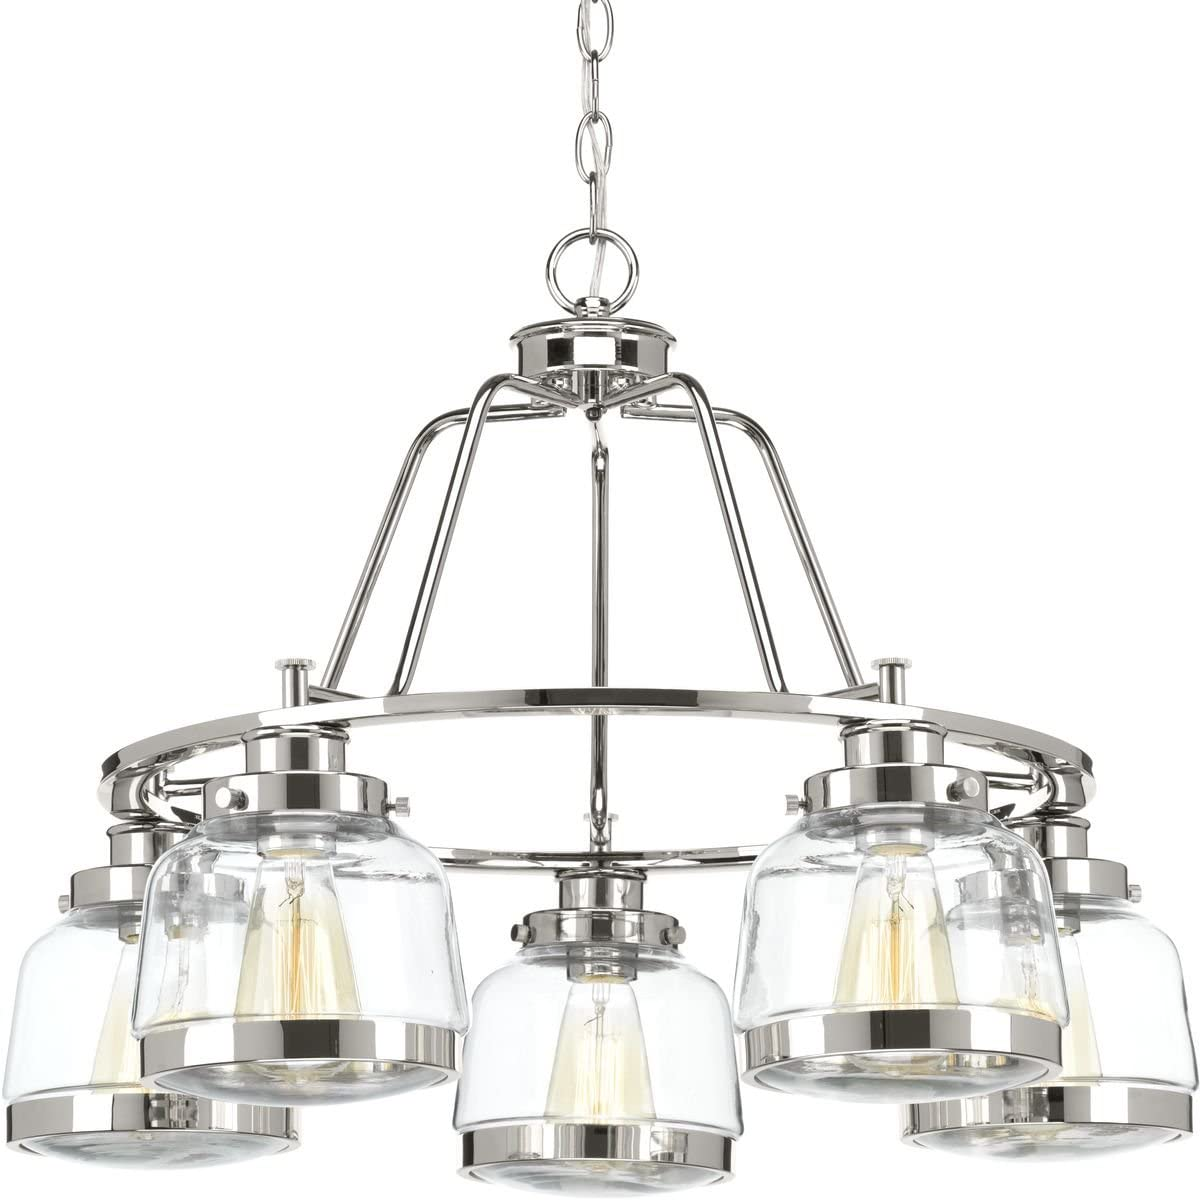 Progress Lighting P400058-104 Judson Chandeliers, Polished Nickel